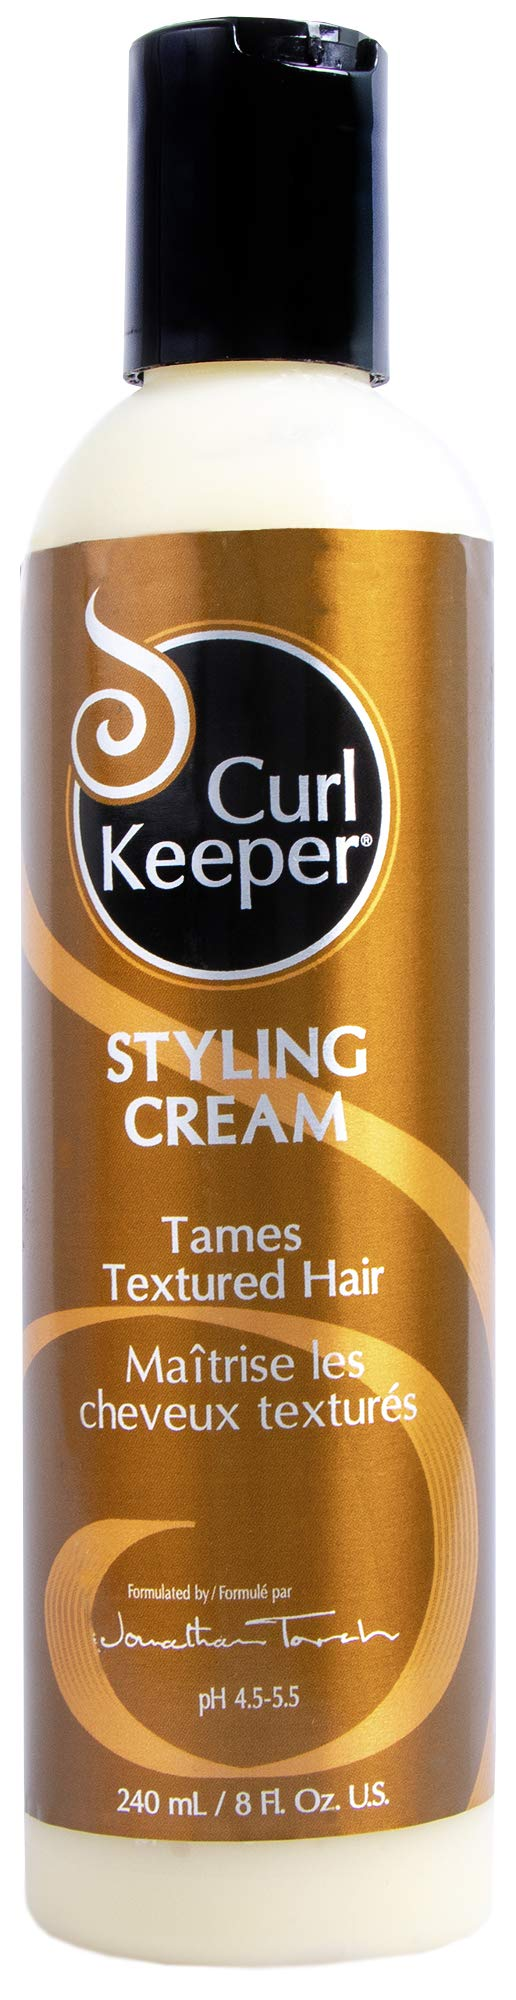 Curly Hair Solutions - Curl Keeper Styling Cream, 8.0 Ounce / 240 Milliliter